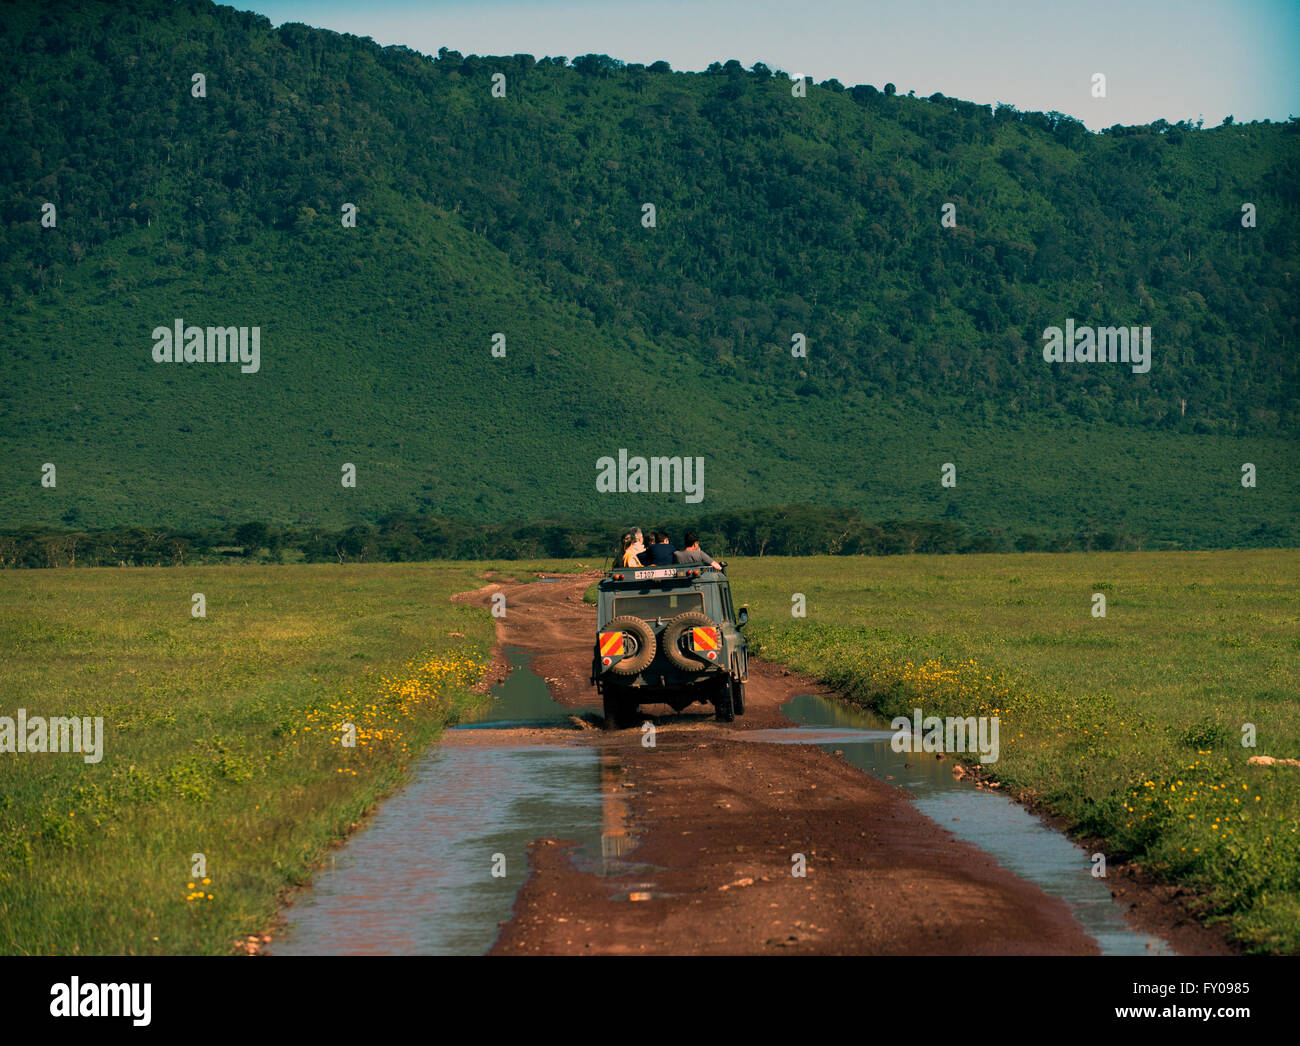 Tourist on safari searching for predators in the Ngorongoro crater conservation area. - Stock Image